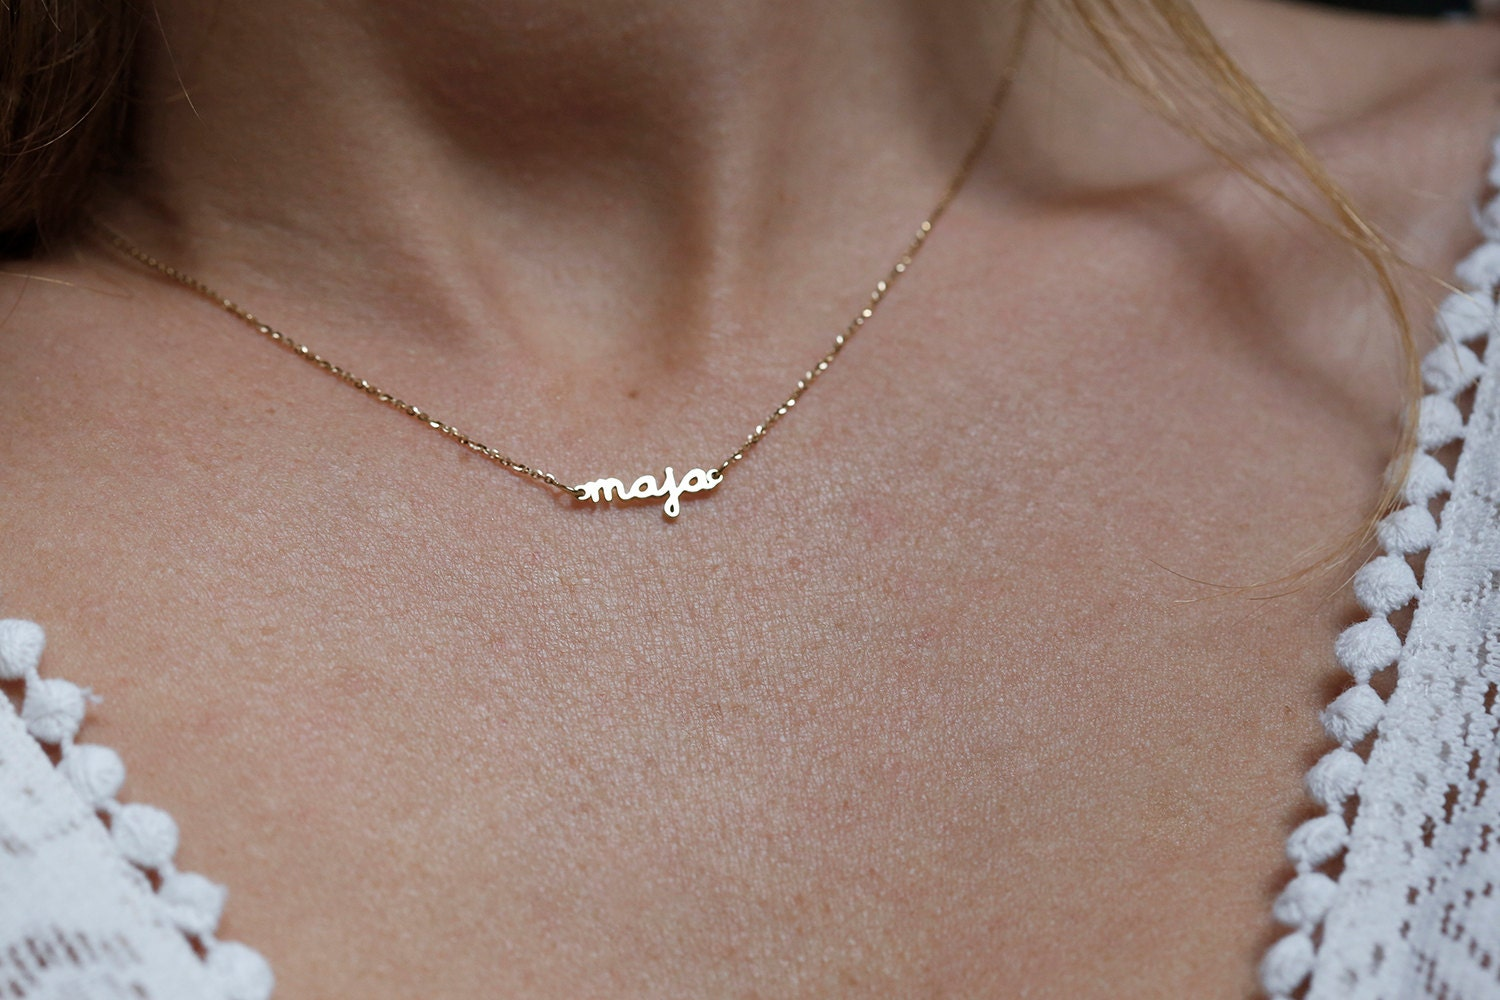 small jewellery chain t ball necklace tilly shop bar on gold tbar sveaas lightbox